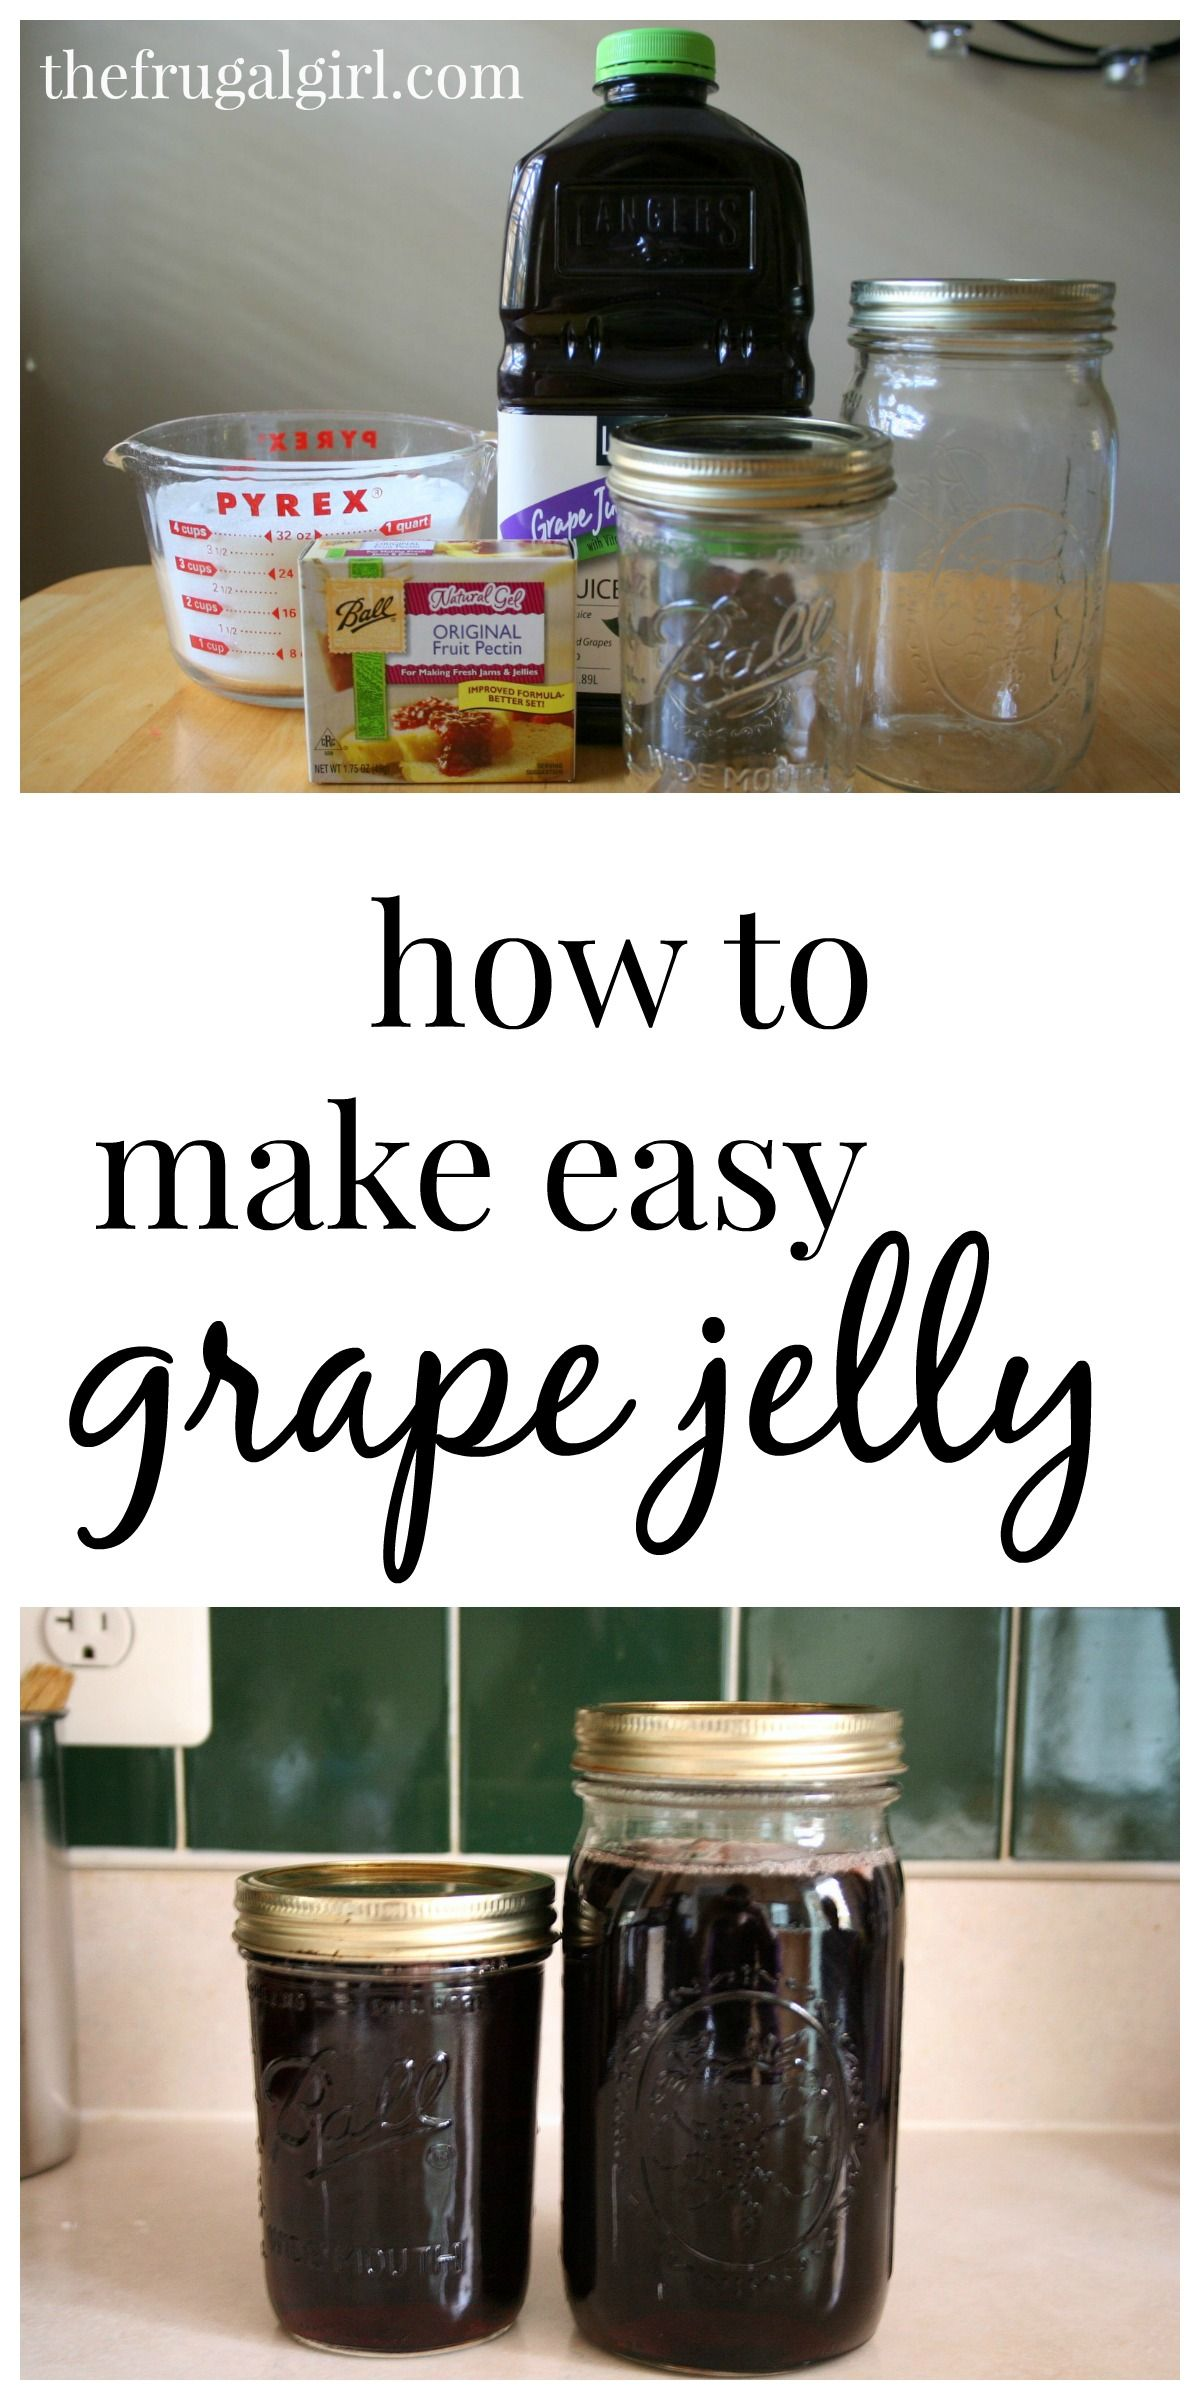 how to make homemade grape jelly (from prepared juice | juice and free